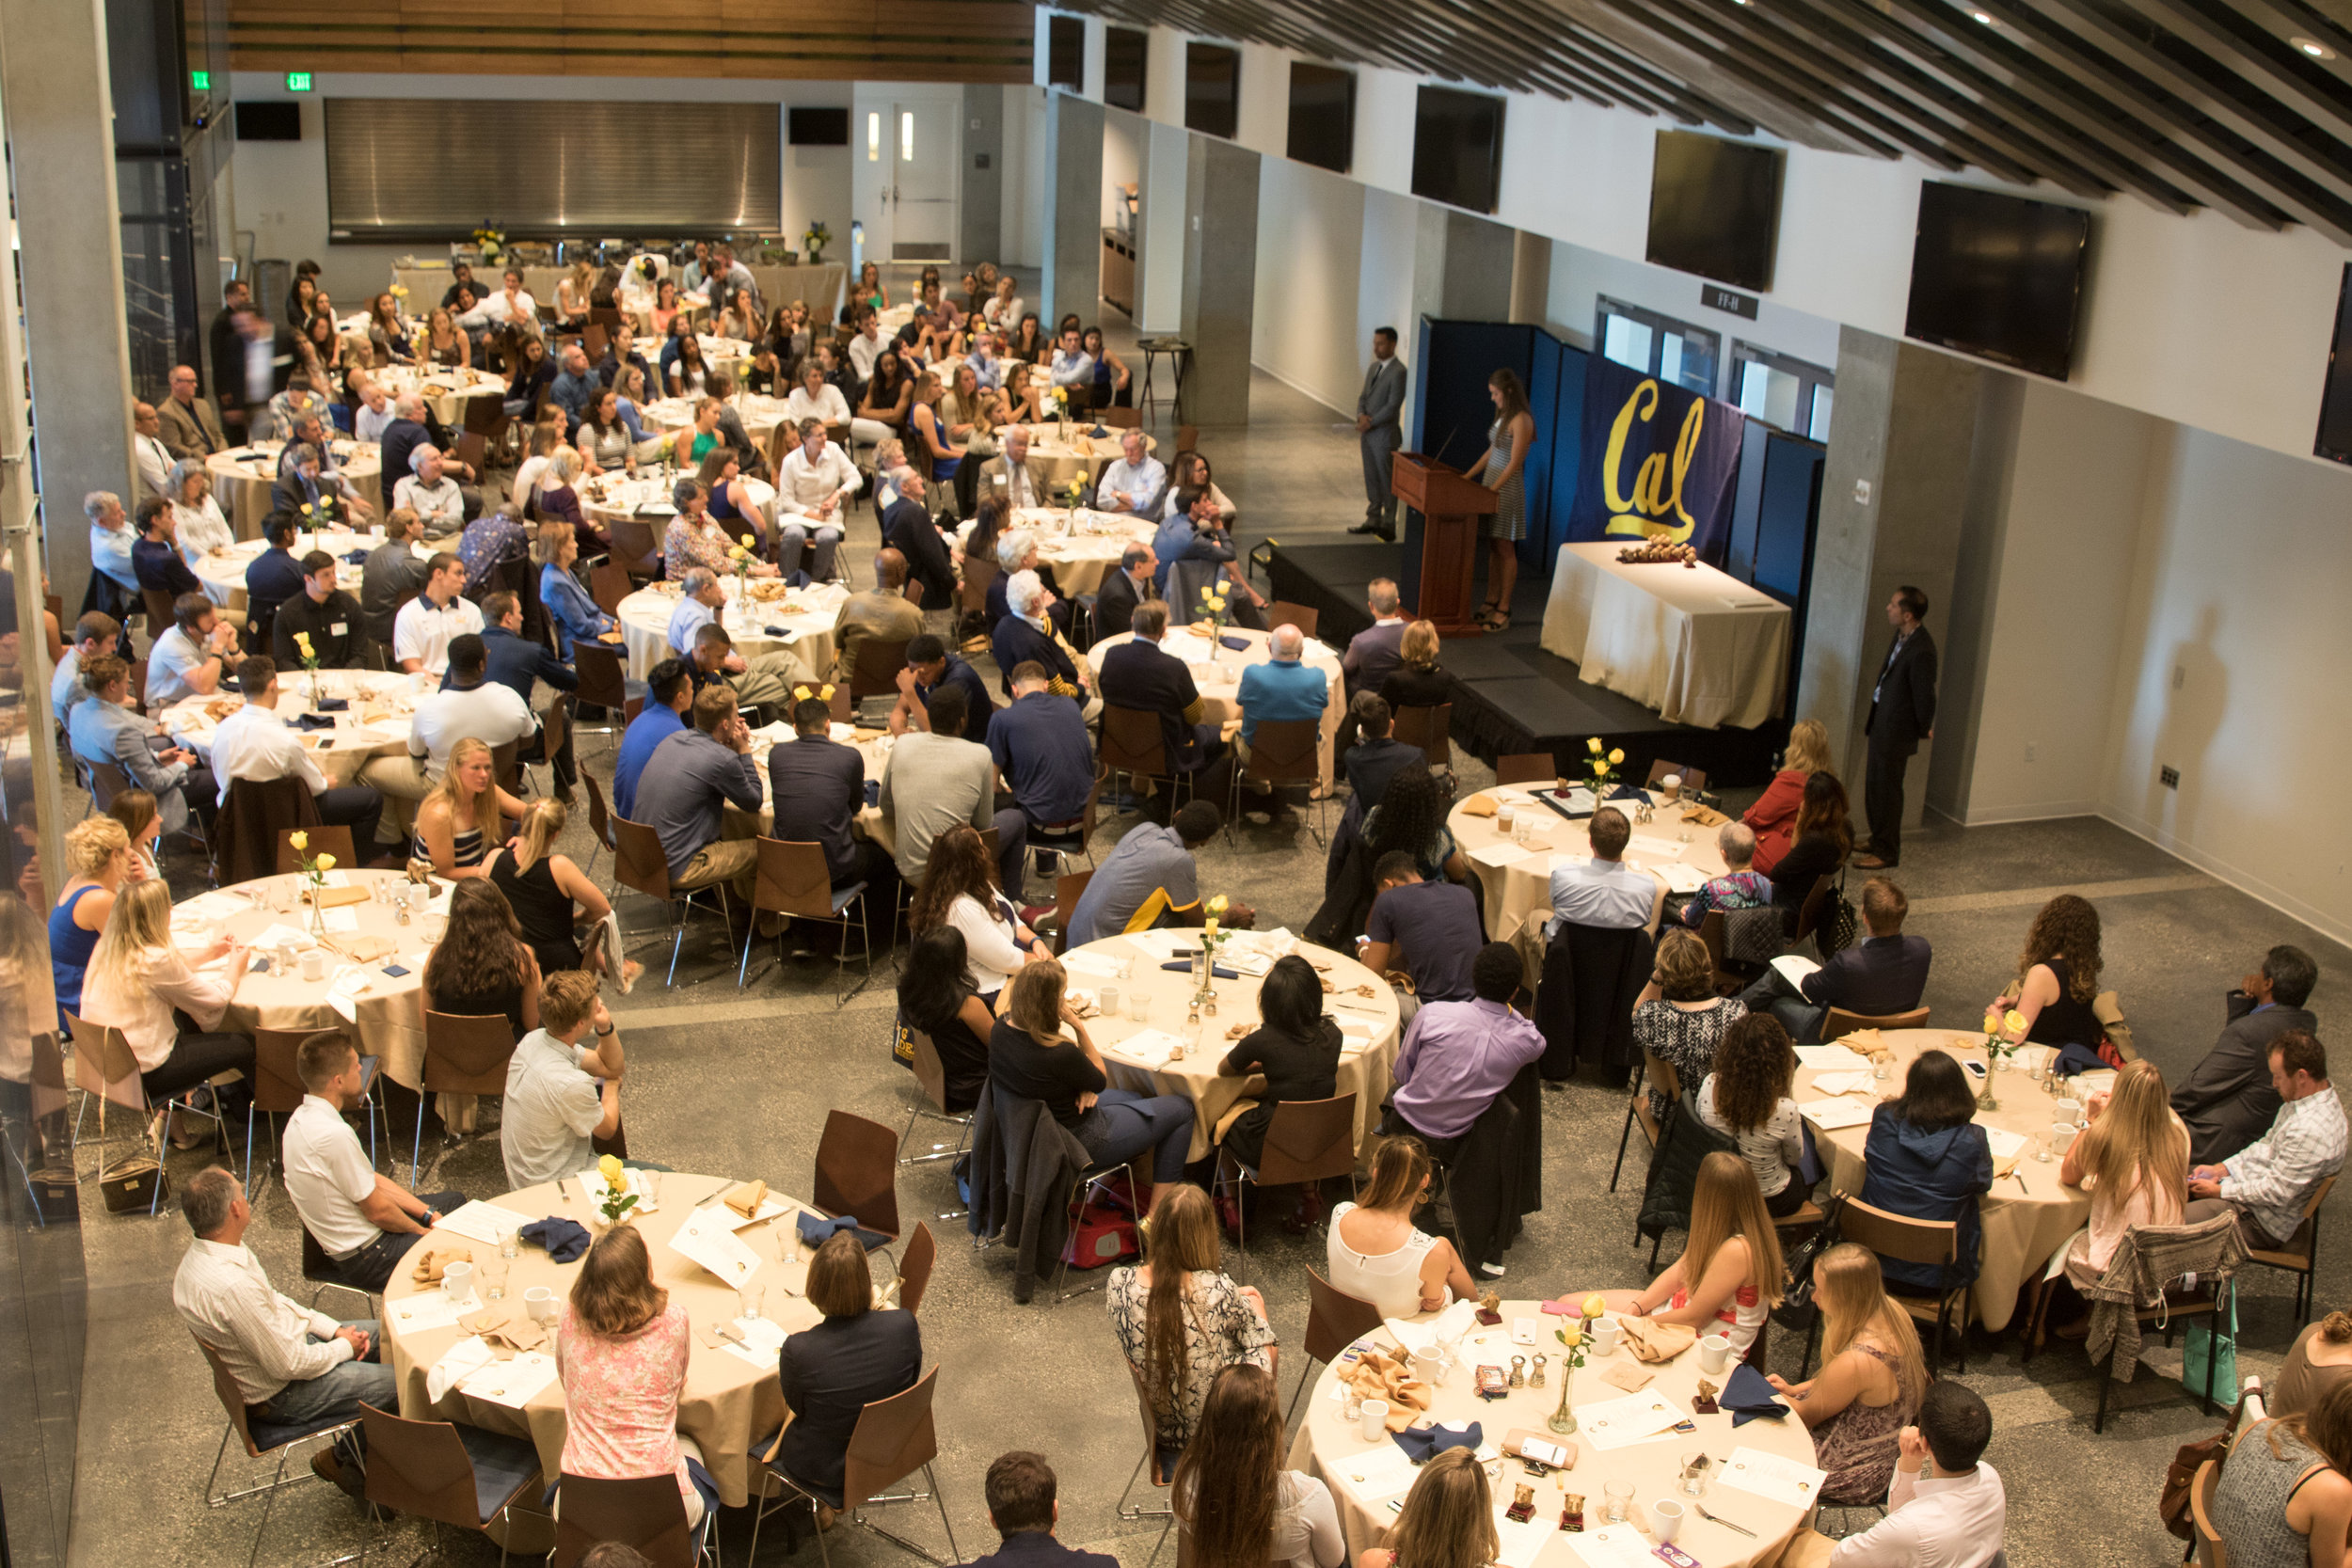 16 Honors Lunch - crowd 058-DZ.jpg